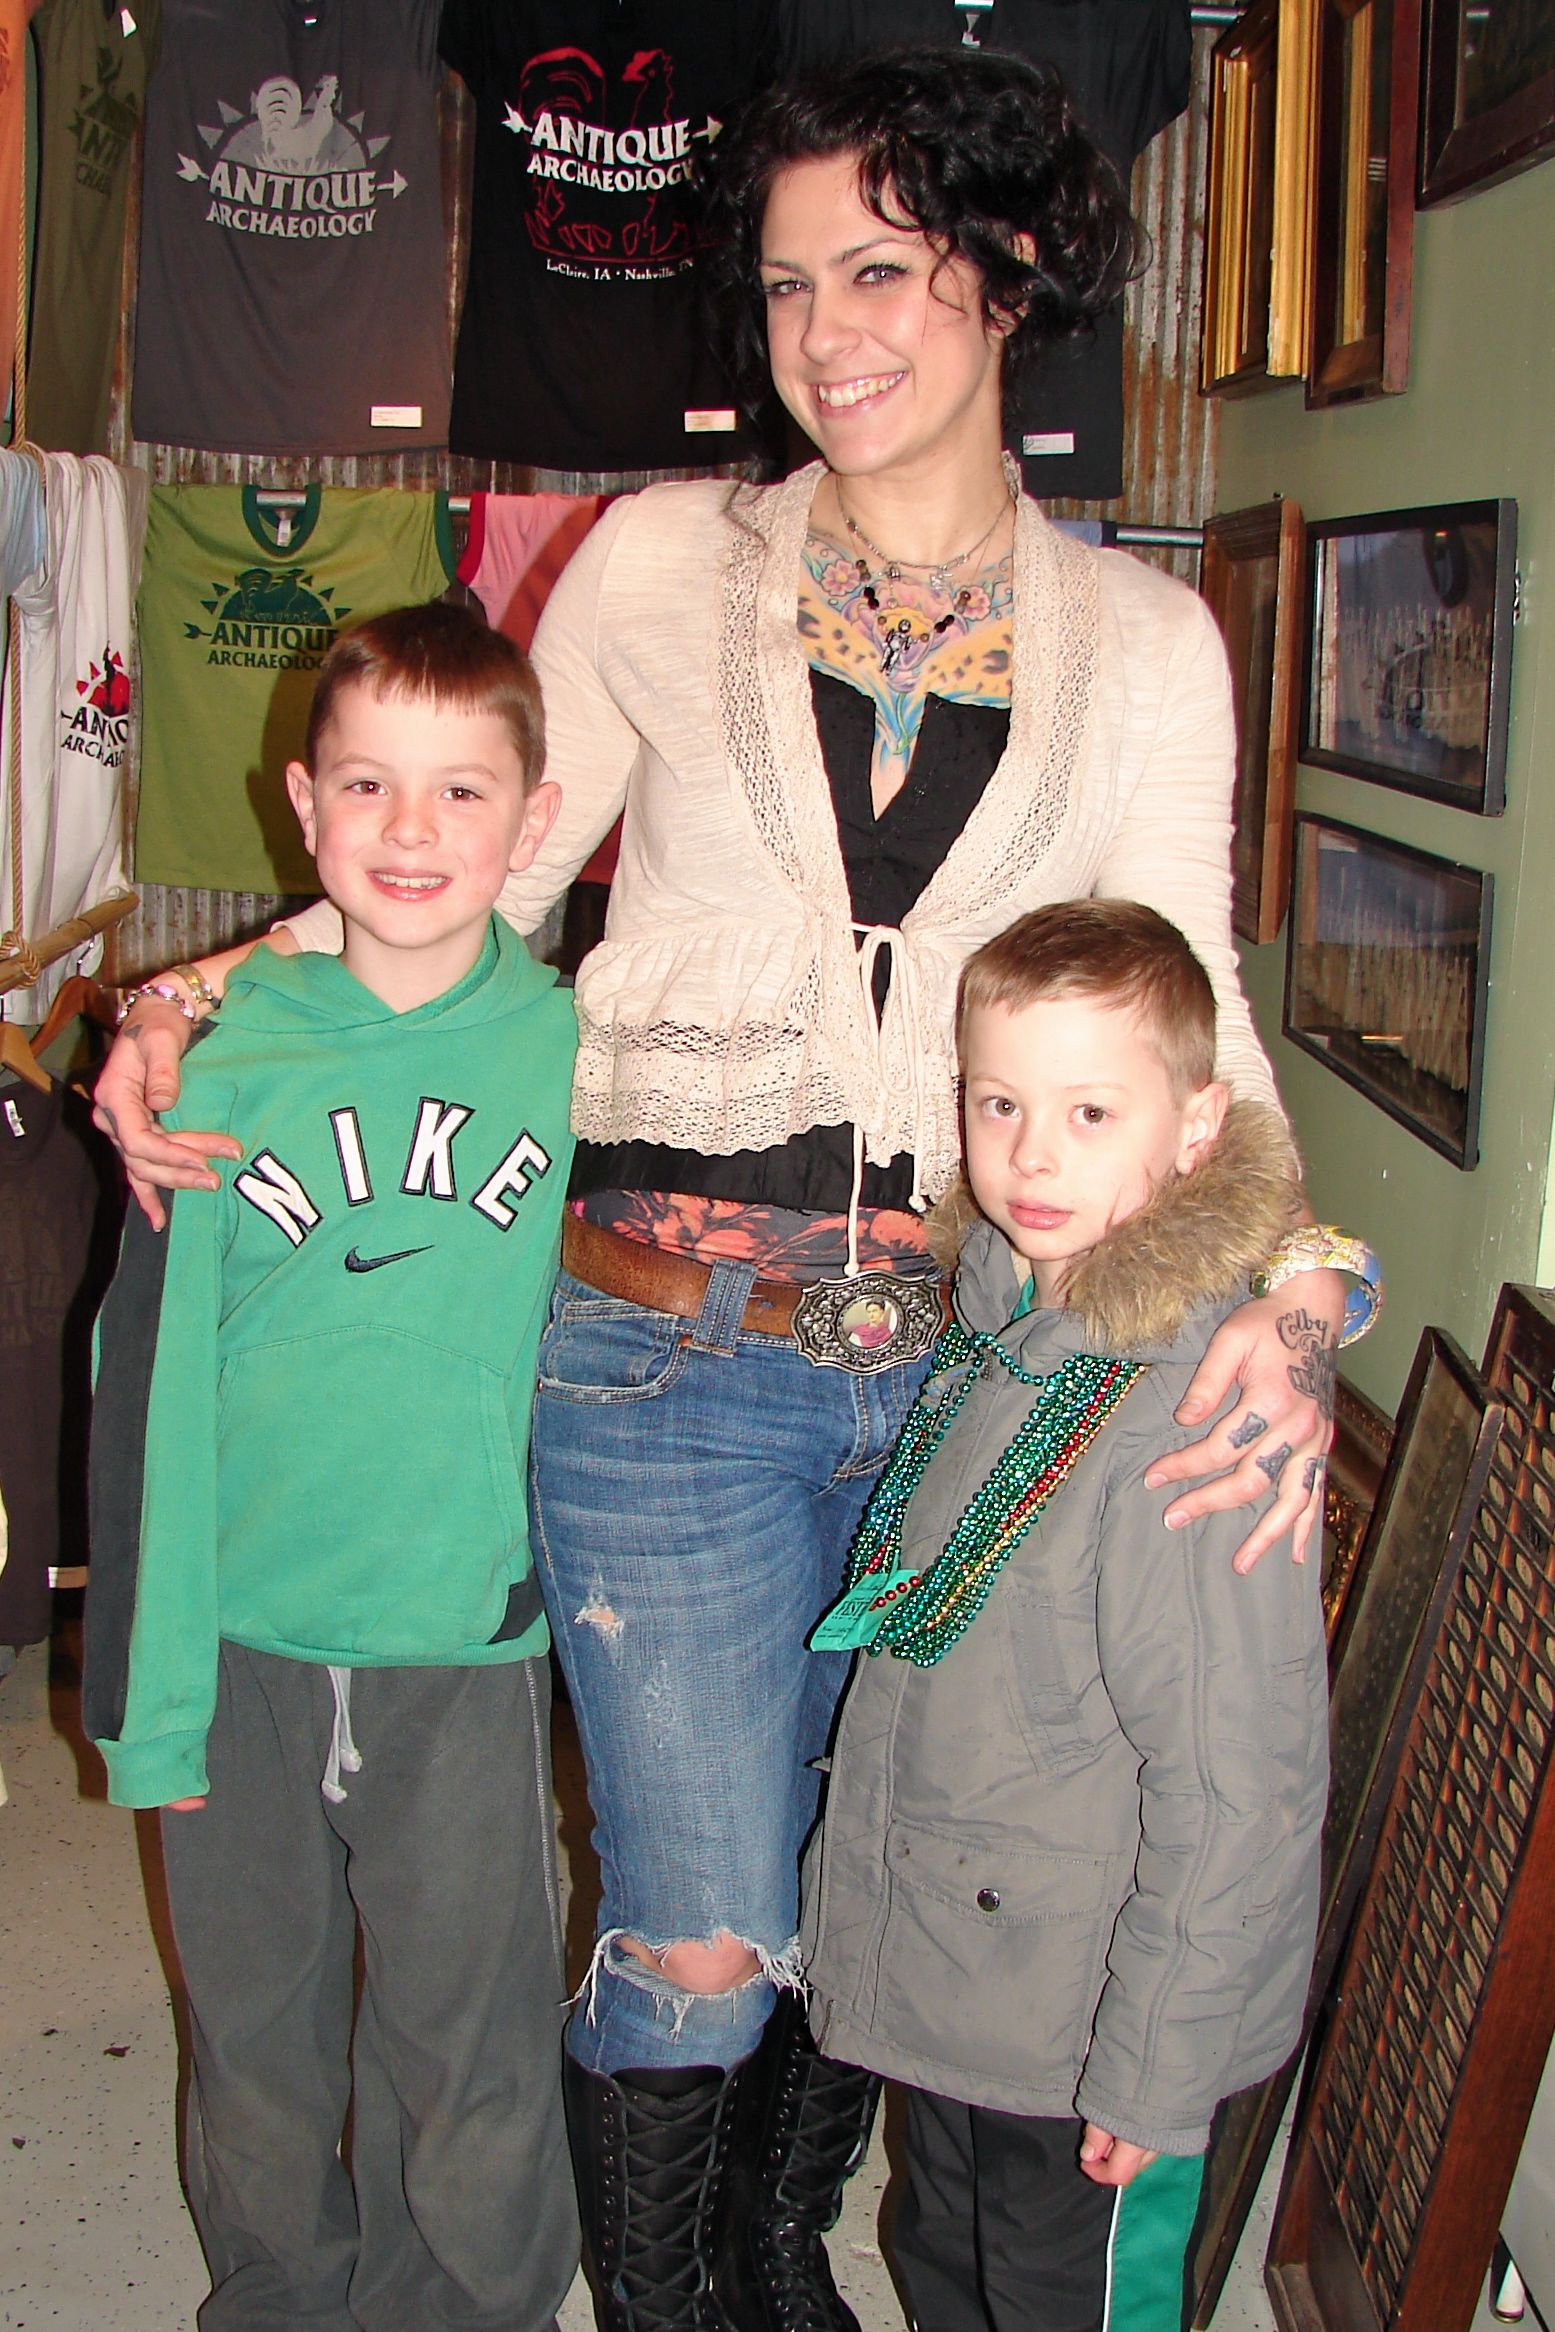 danielle with boys 2 3 danielle boy 1